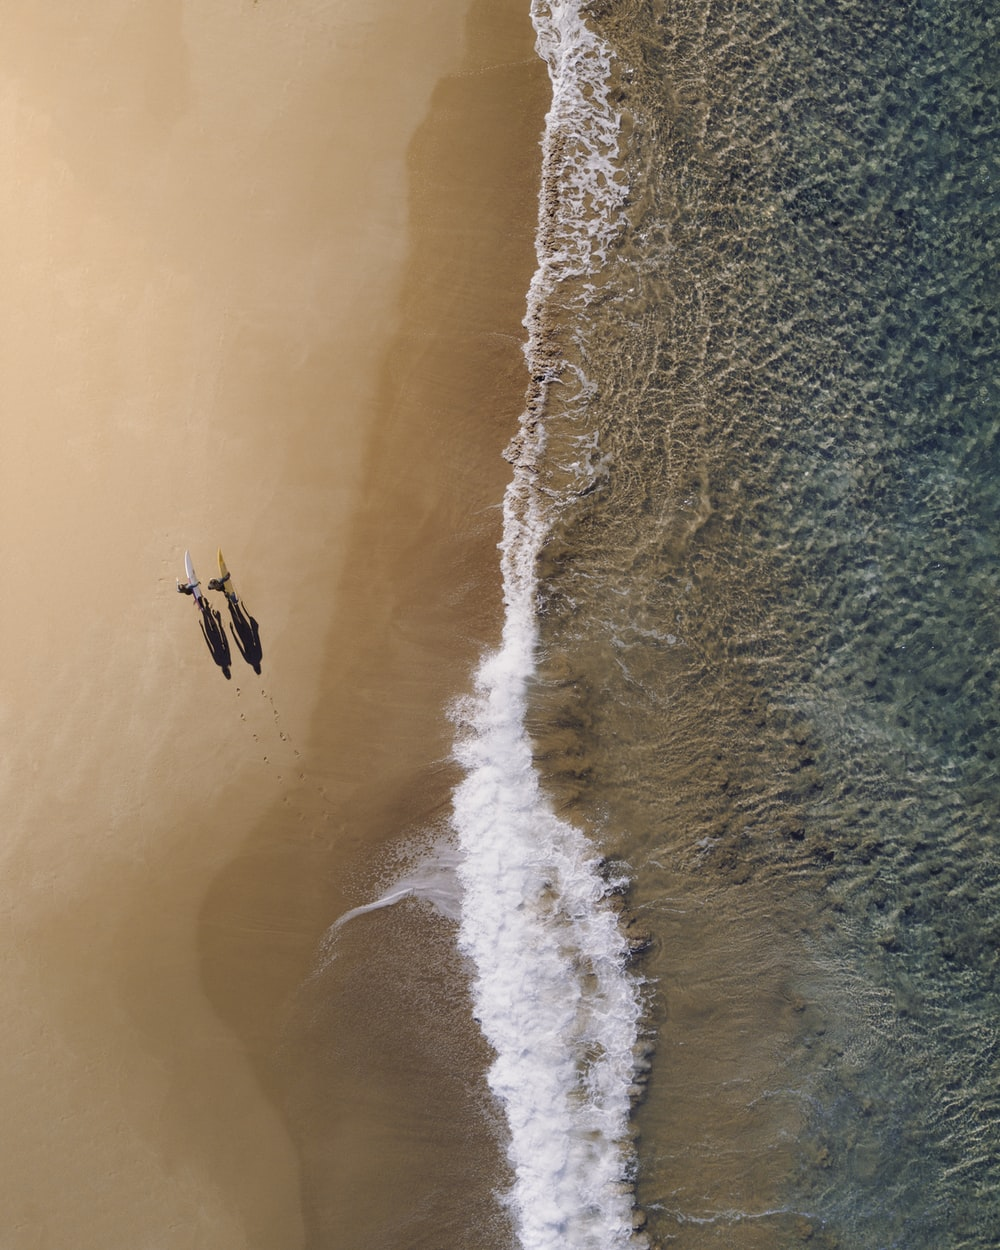 aerial photography of two persons walking along seashore during daytime